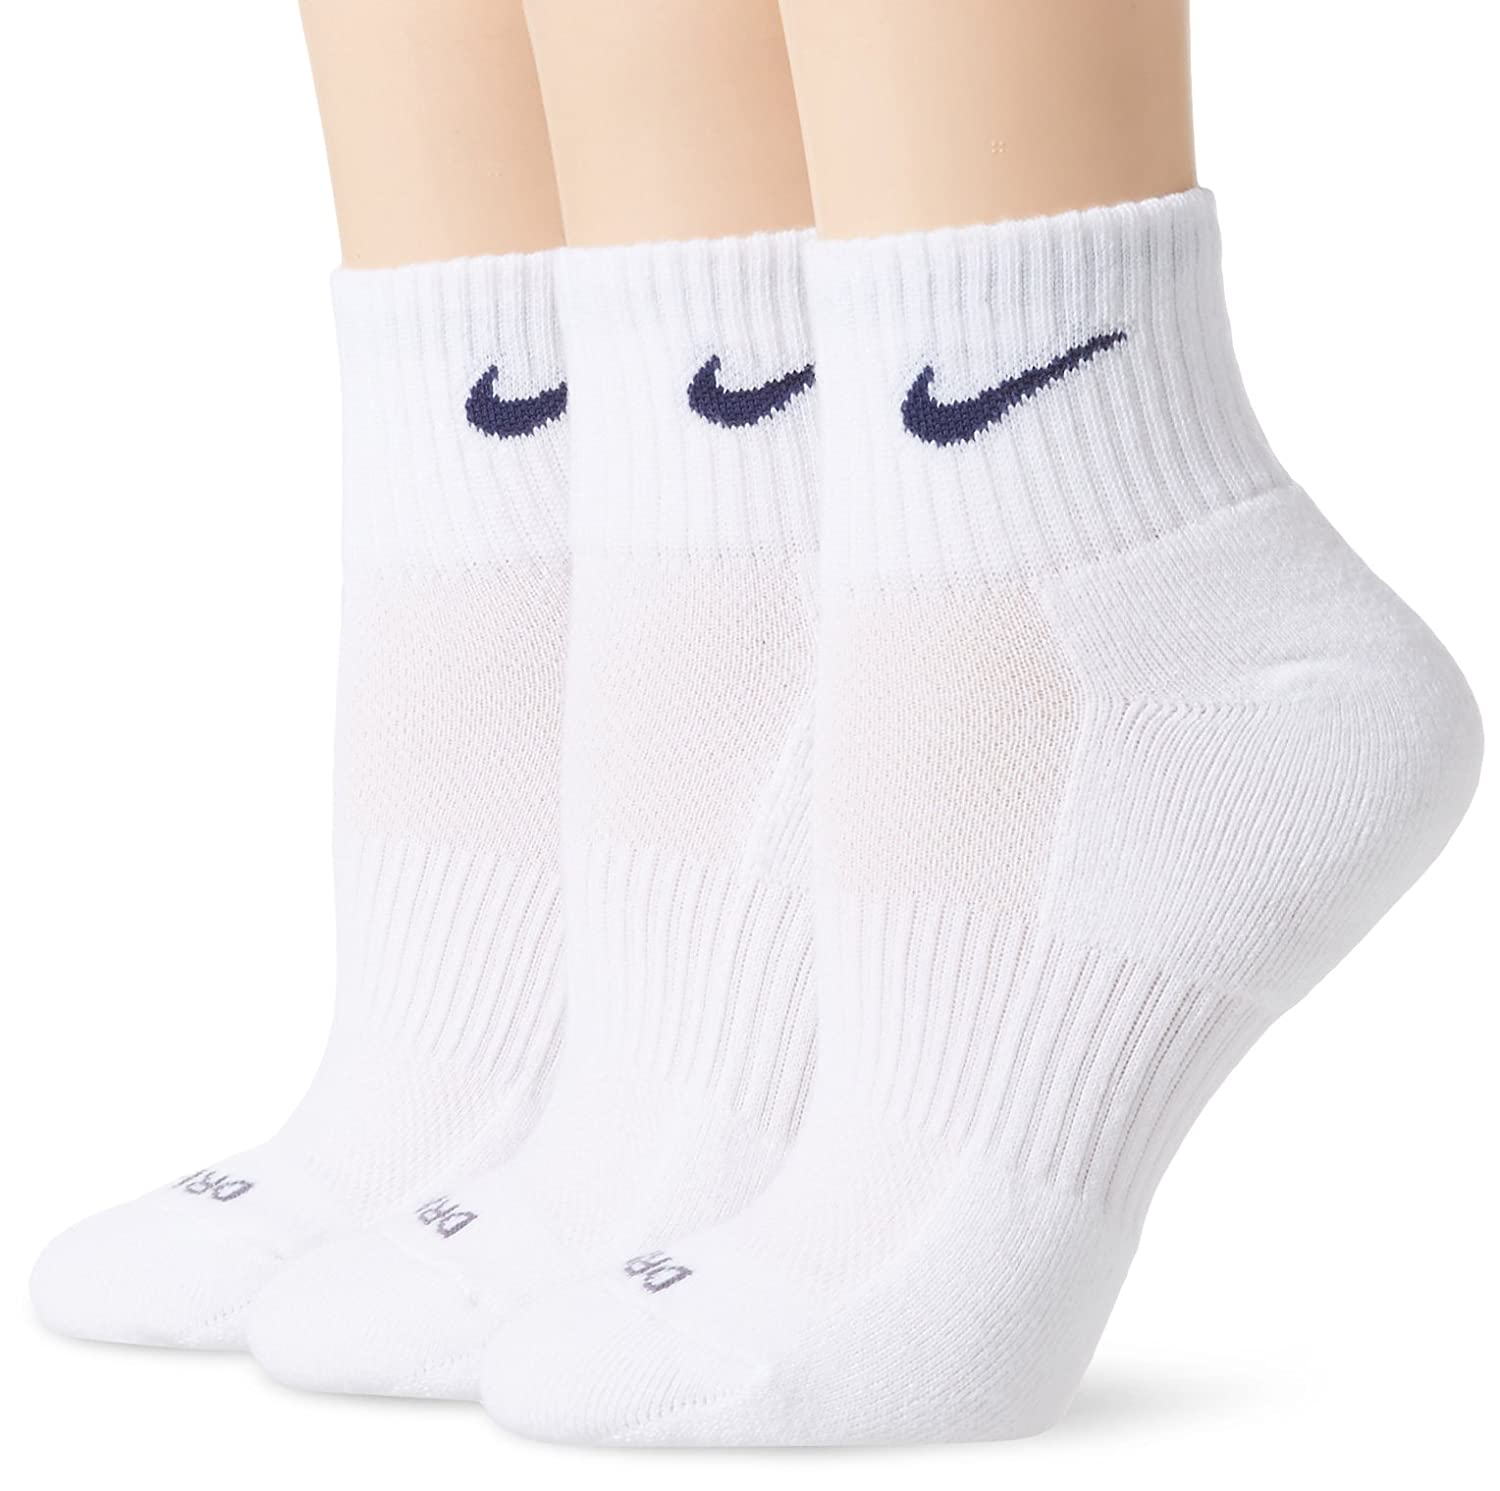 52afe9779 Amazon.com : Nike Dri-Fit Quarter Socks (Large), White : Athletic Socks :  Clothing